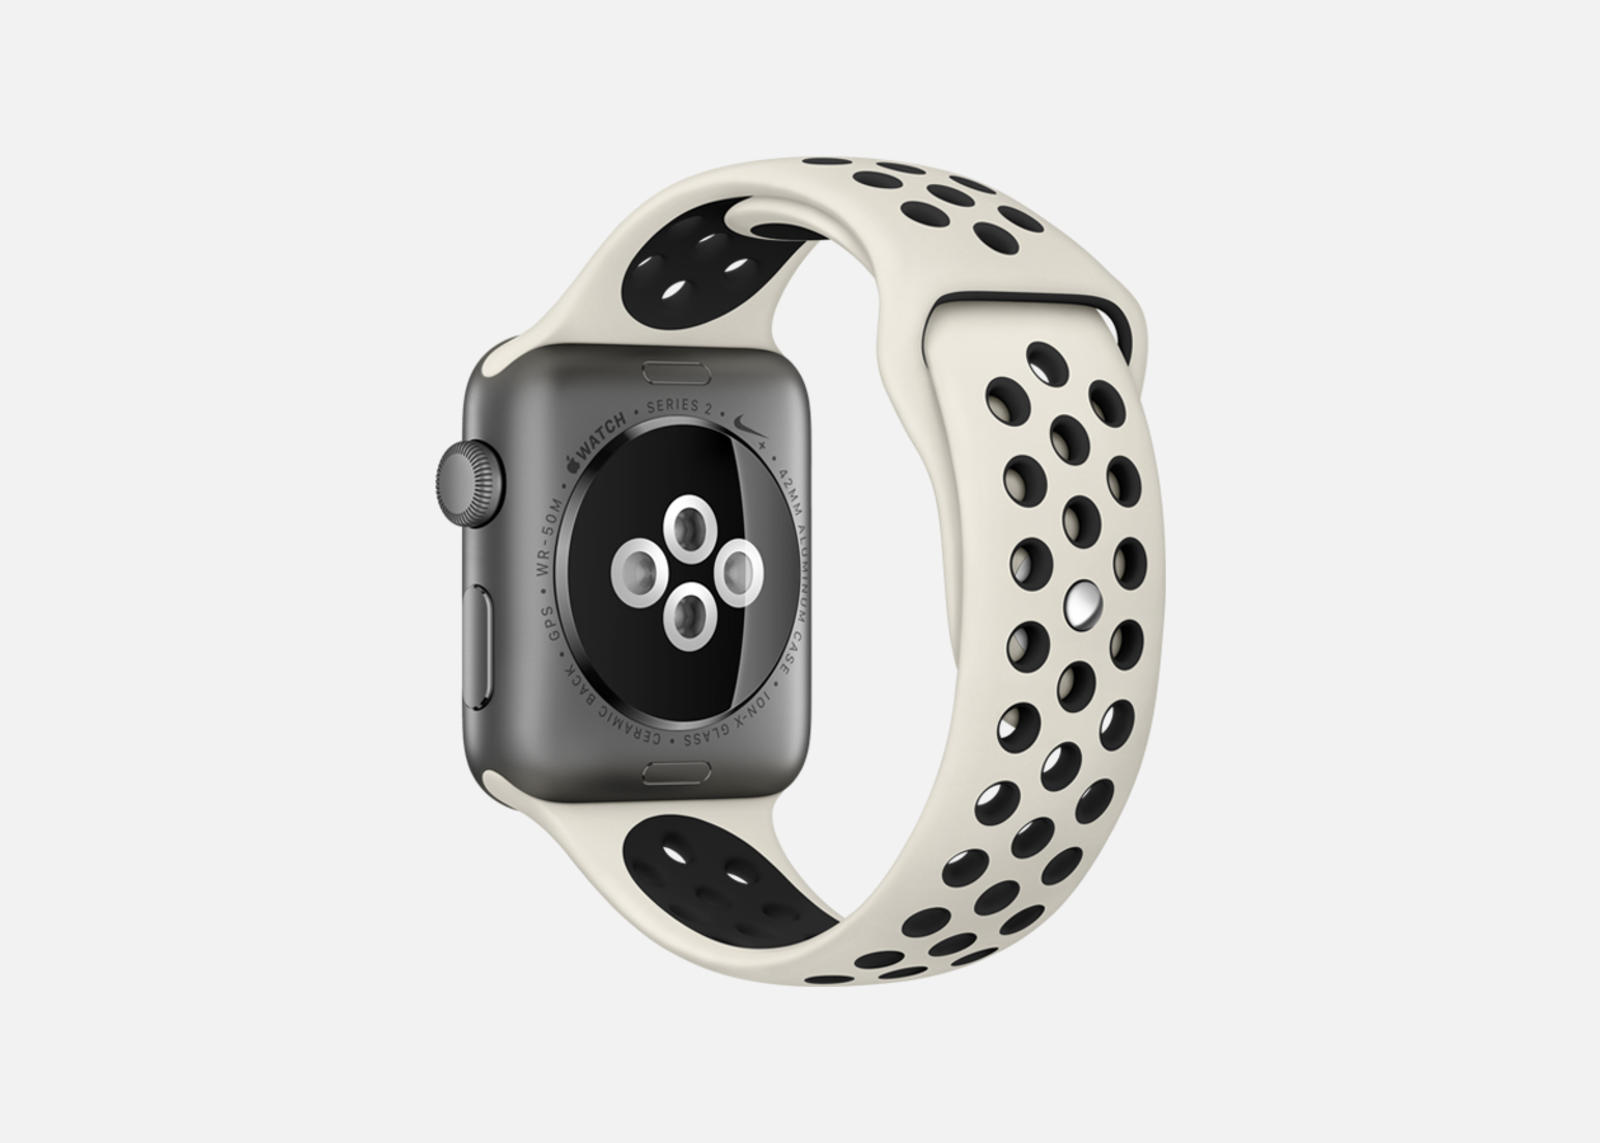 apple_watch_nikelab_3_rectangle_1600.jpg